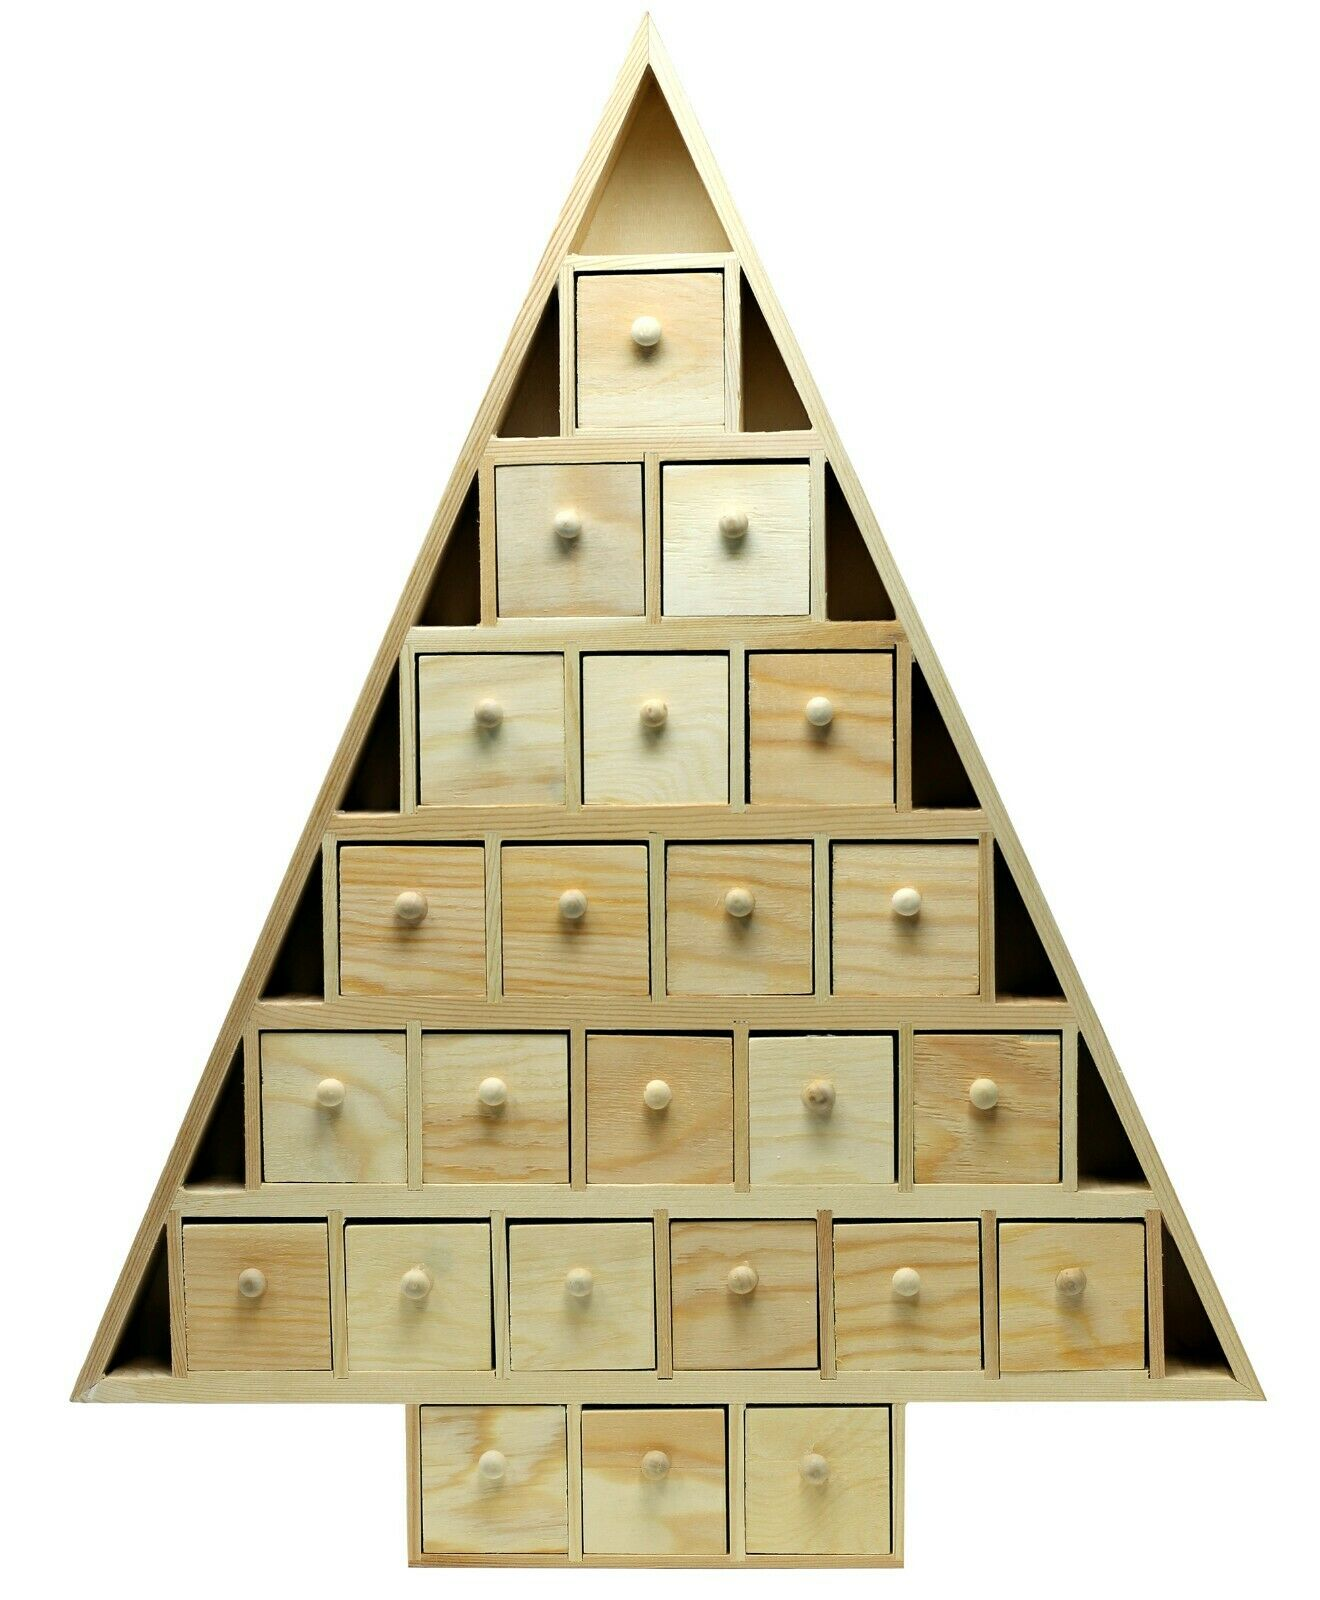 20 Inch Tall Christmas Tree Shaped Advent Calendar, Unfinished Wood, 24 drawers Crafting Pieces